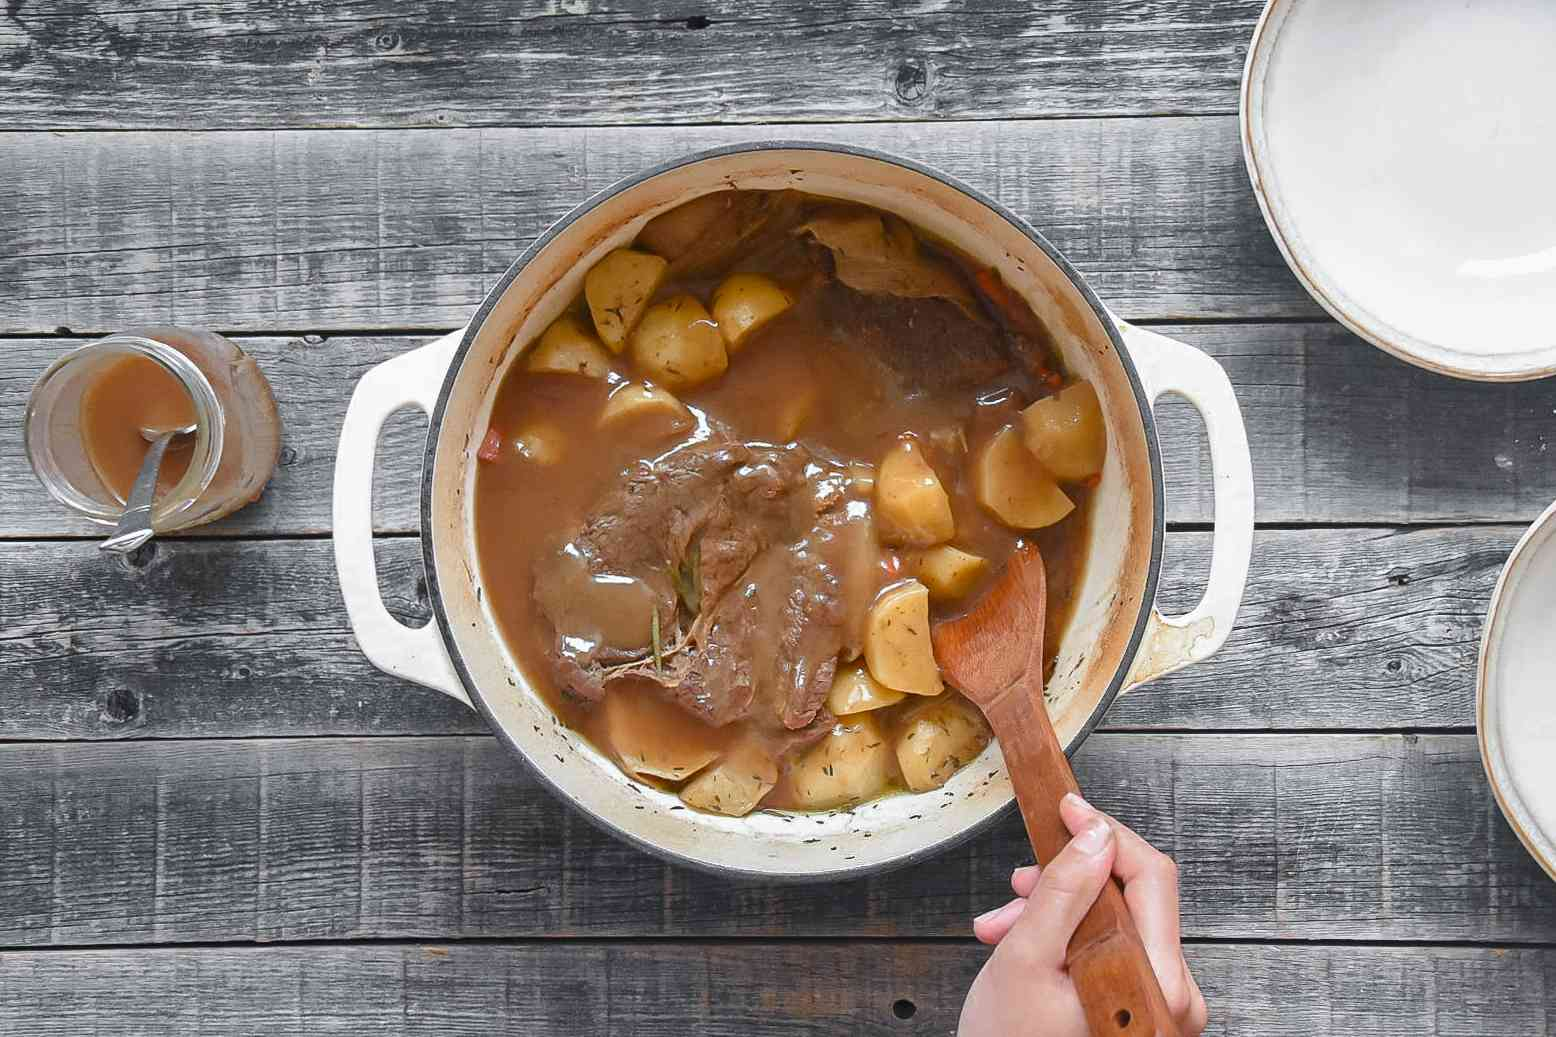 Gravy poured over the pot roast and vegetables in the large white pot